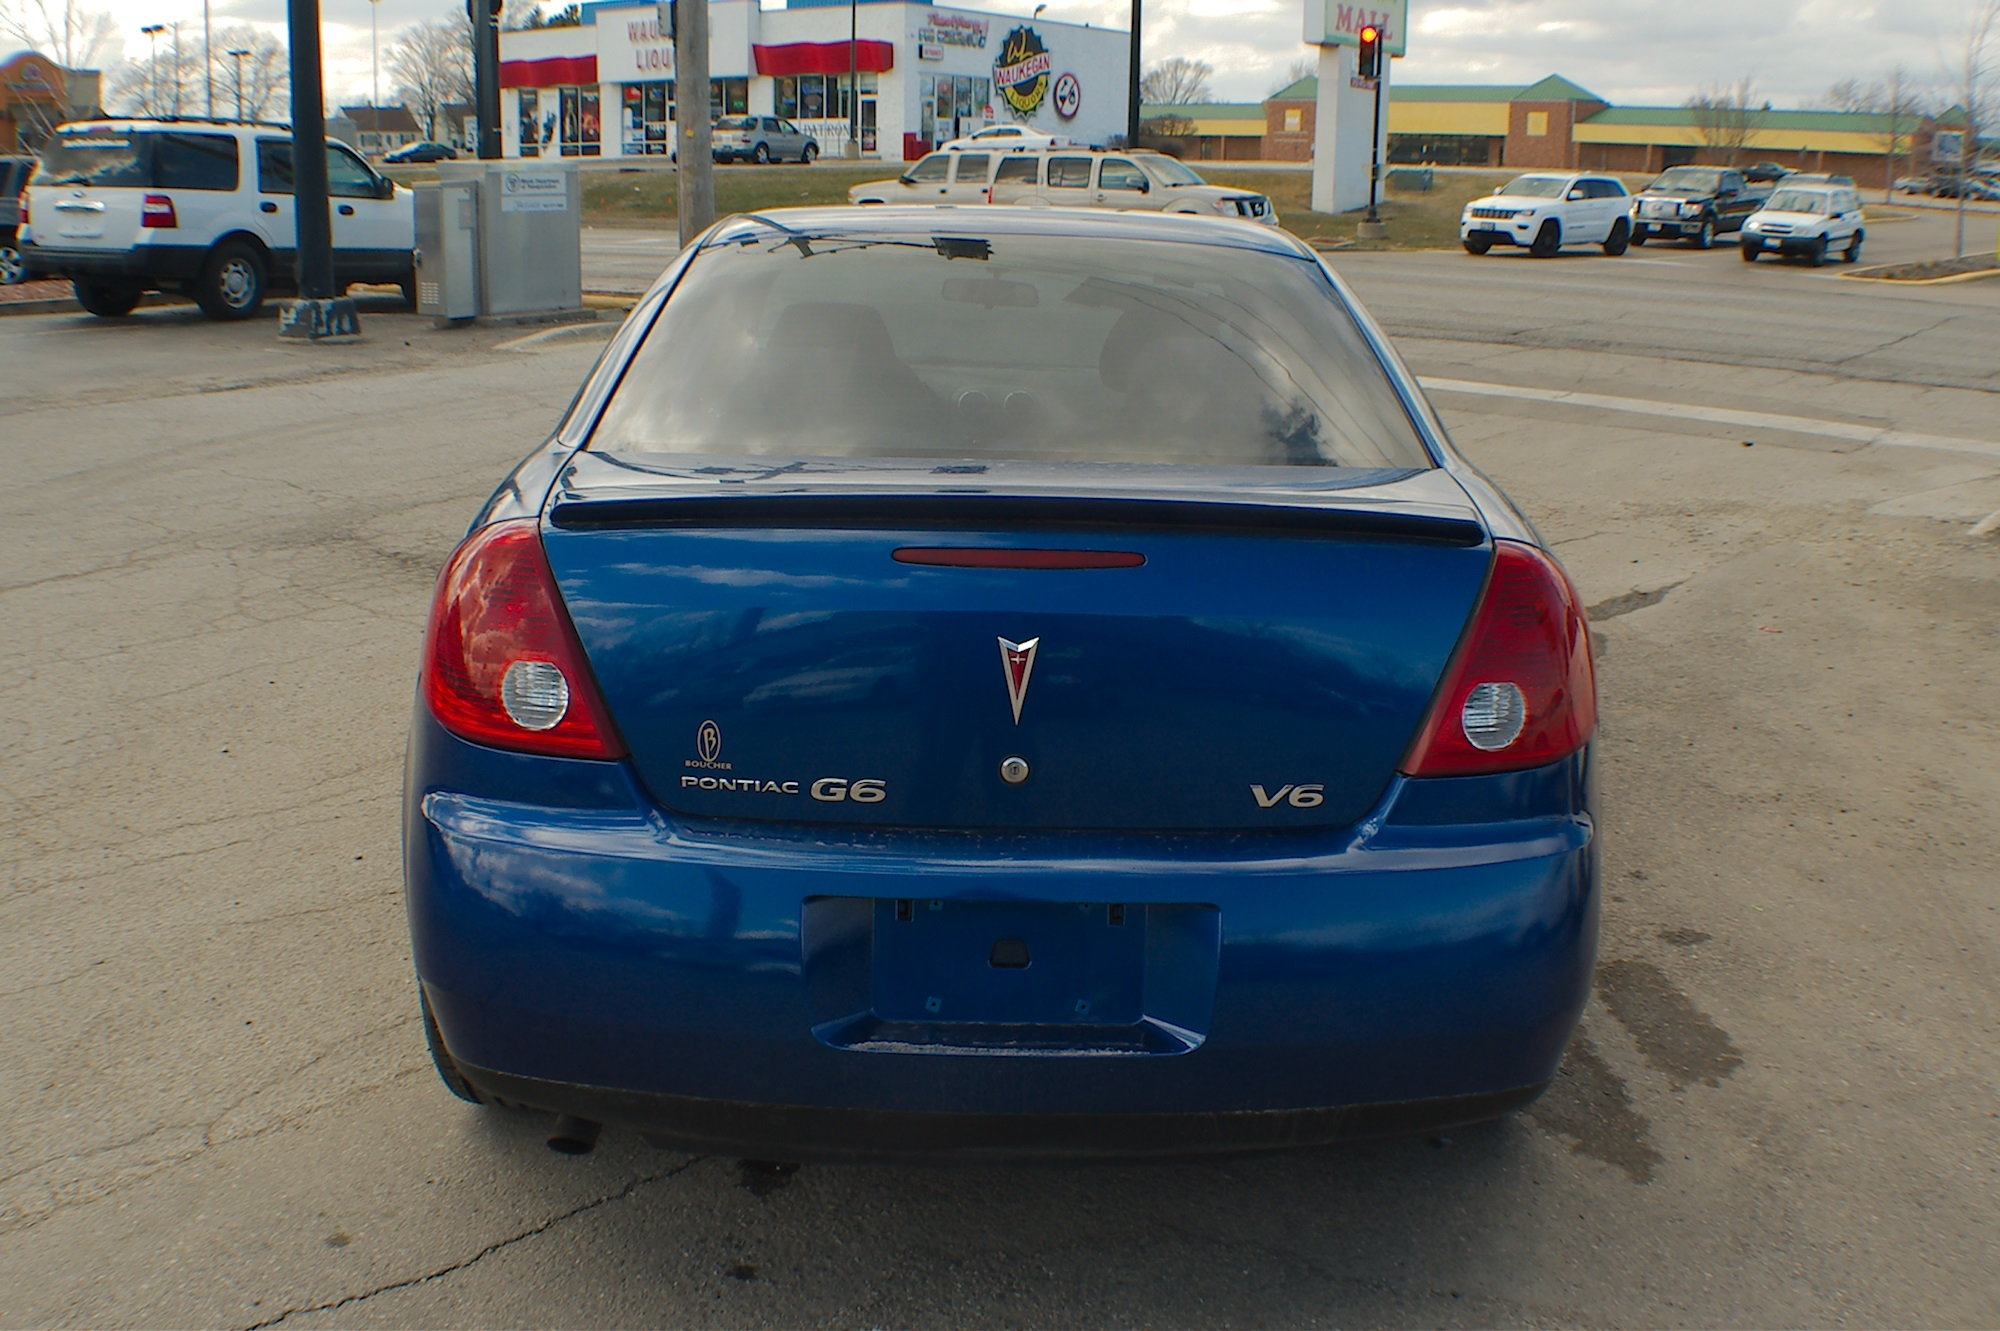 2007 Pontiac G6 Blue Sedan Used Car Sale Buffalo Grove Deerfield Fox Lake Antioch